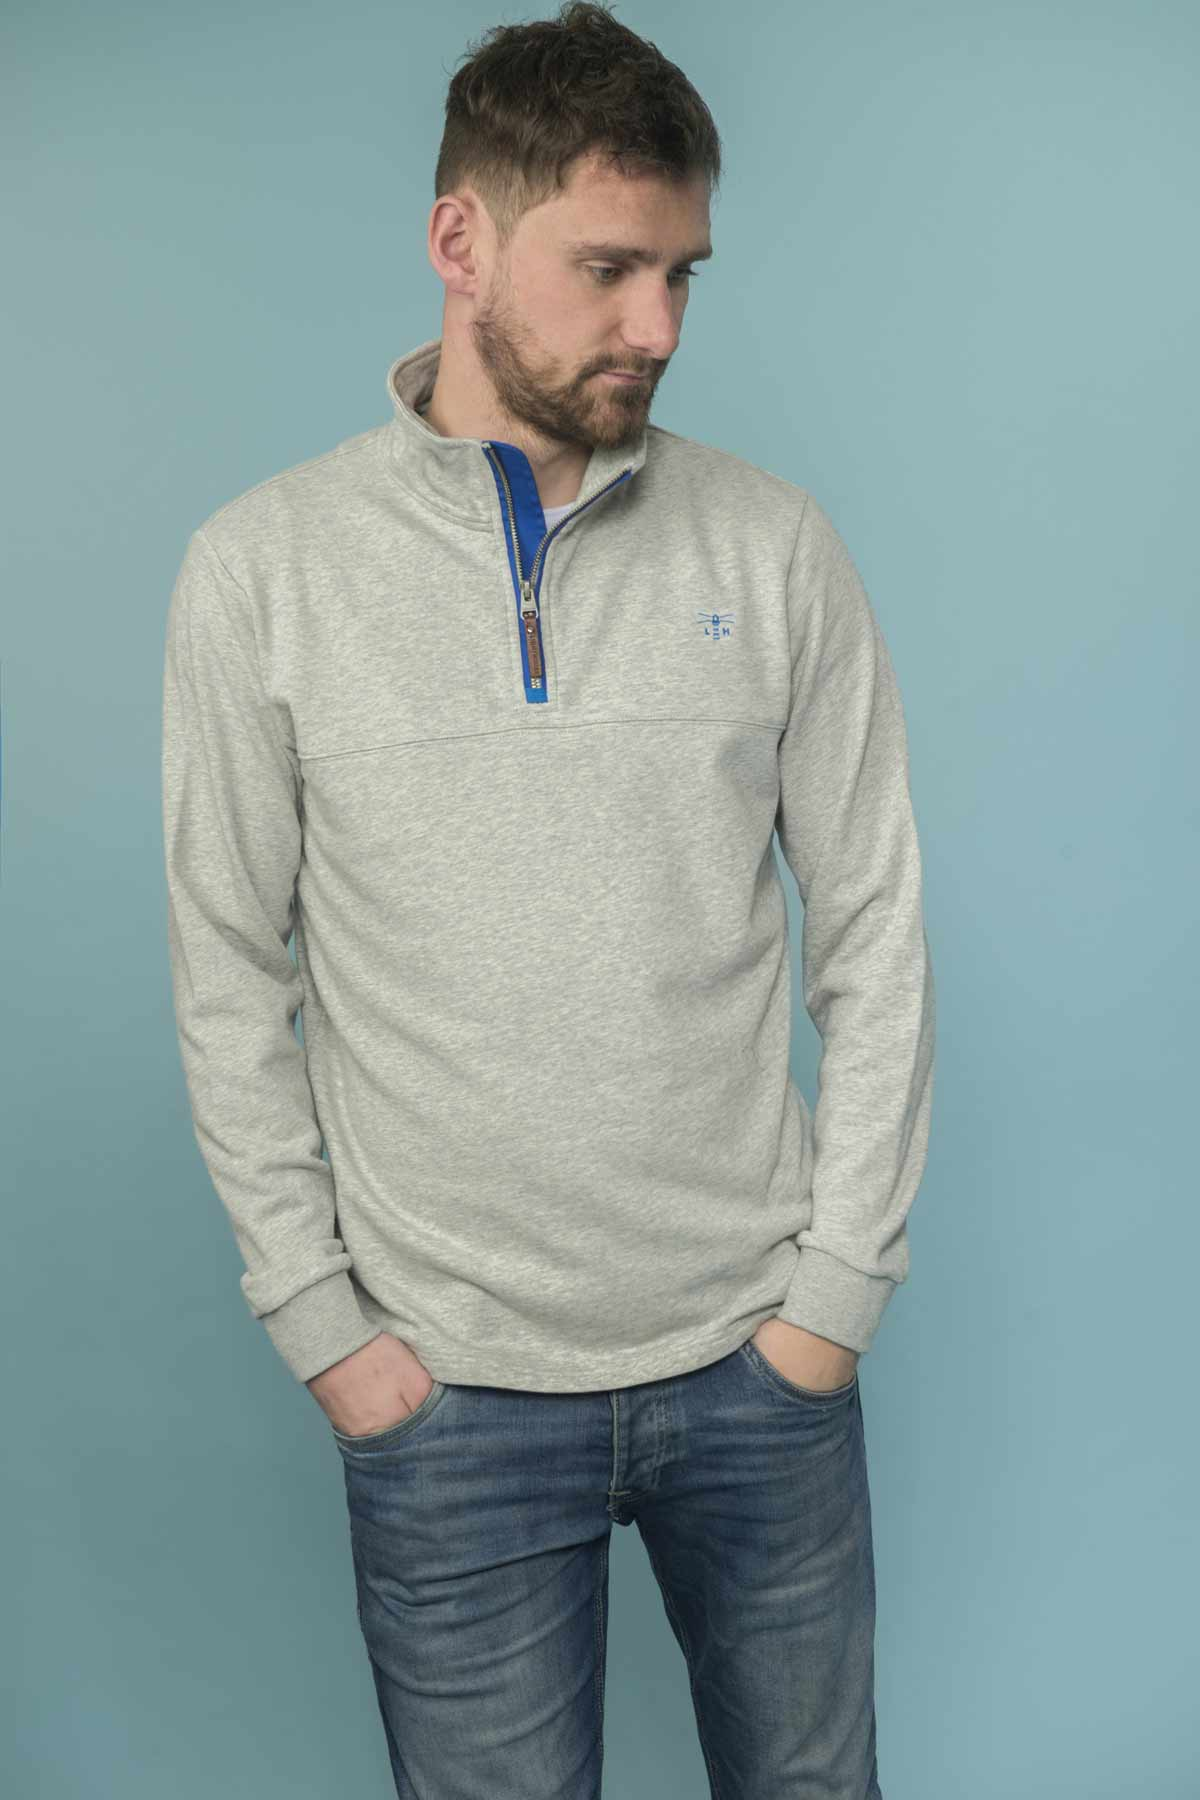 Lighthouse Seafarer men's light grey sweater